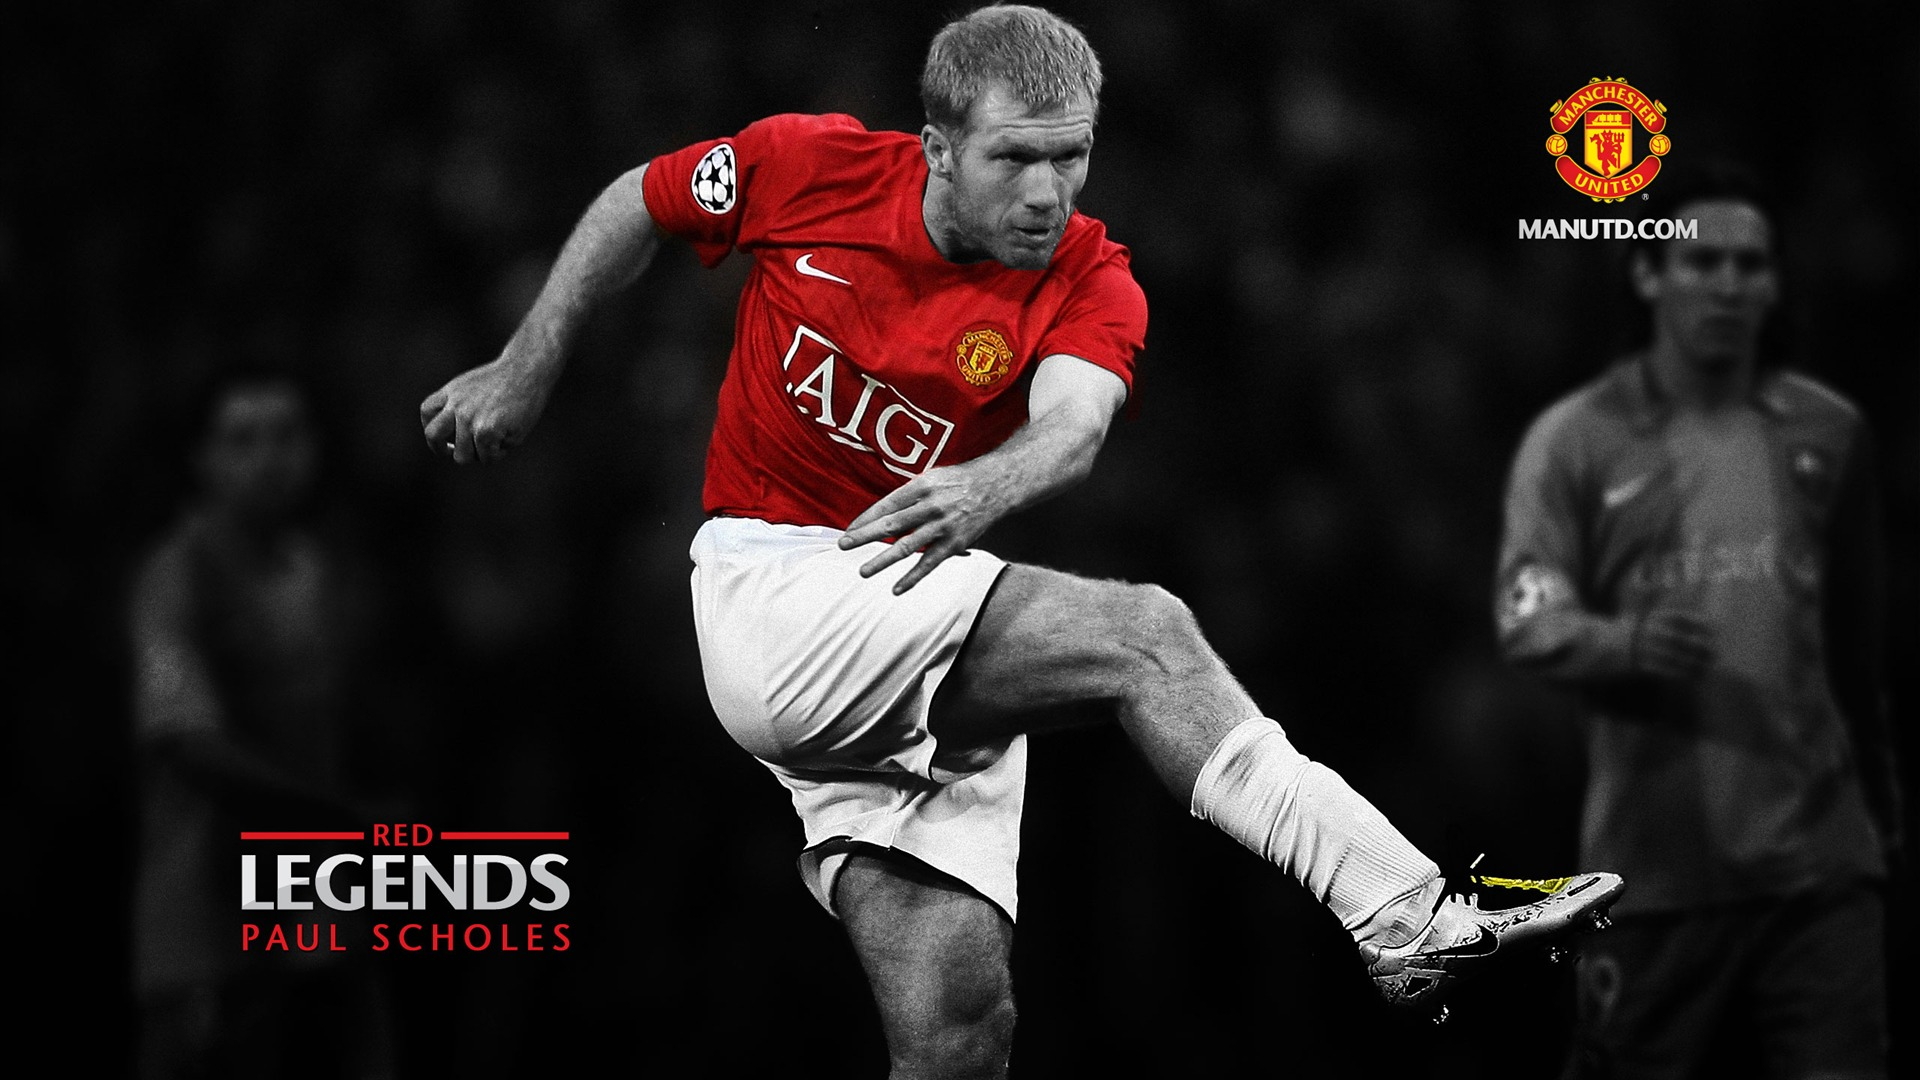 Manchester United Wallpapers 1920x1080 - WallpaperSafari